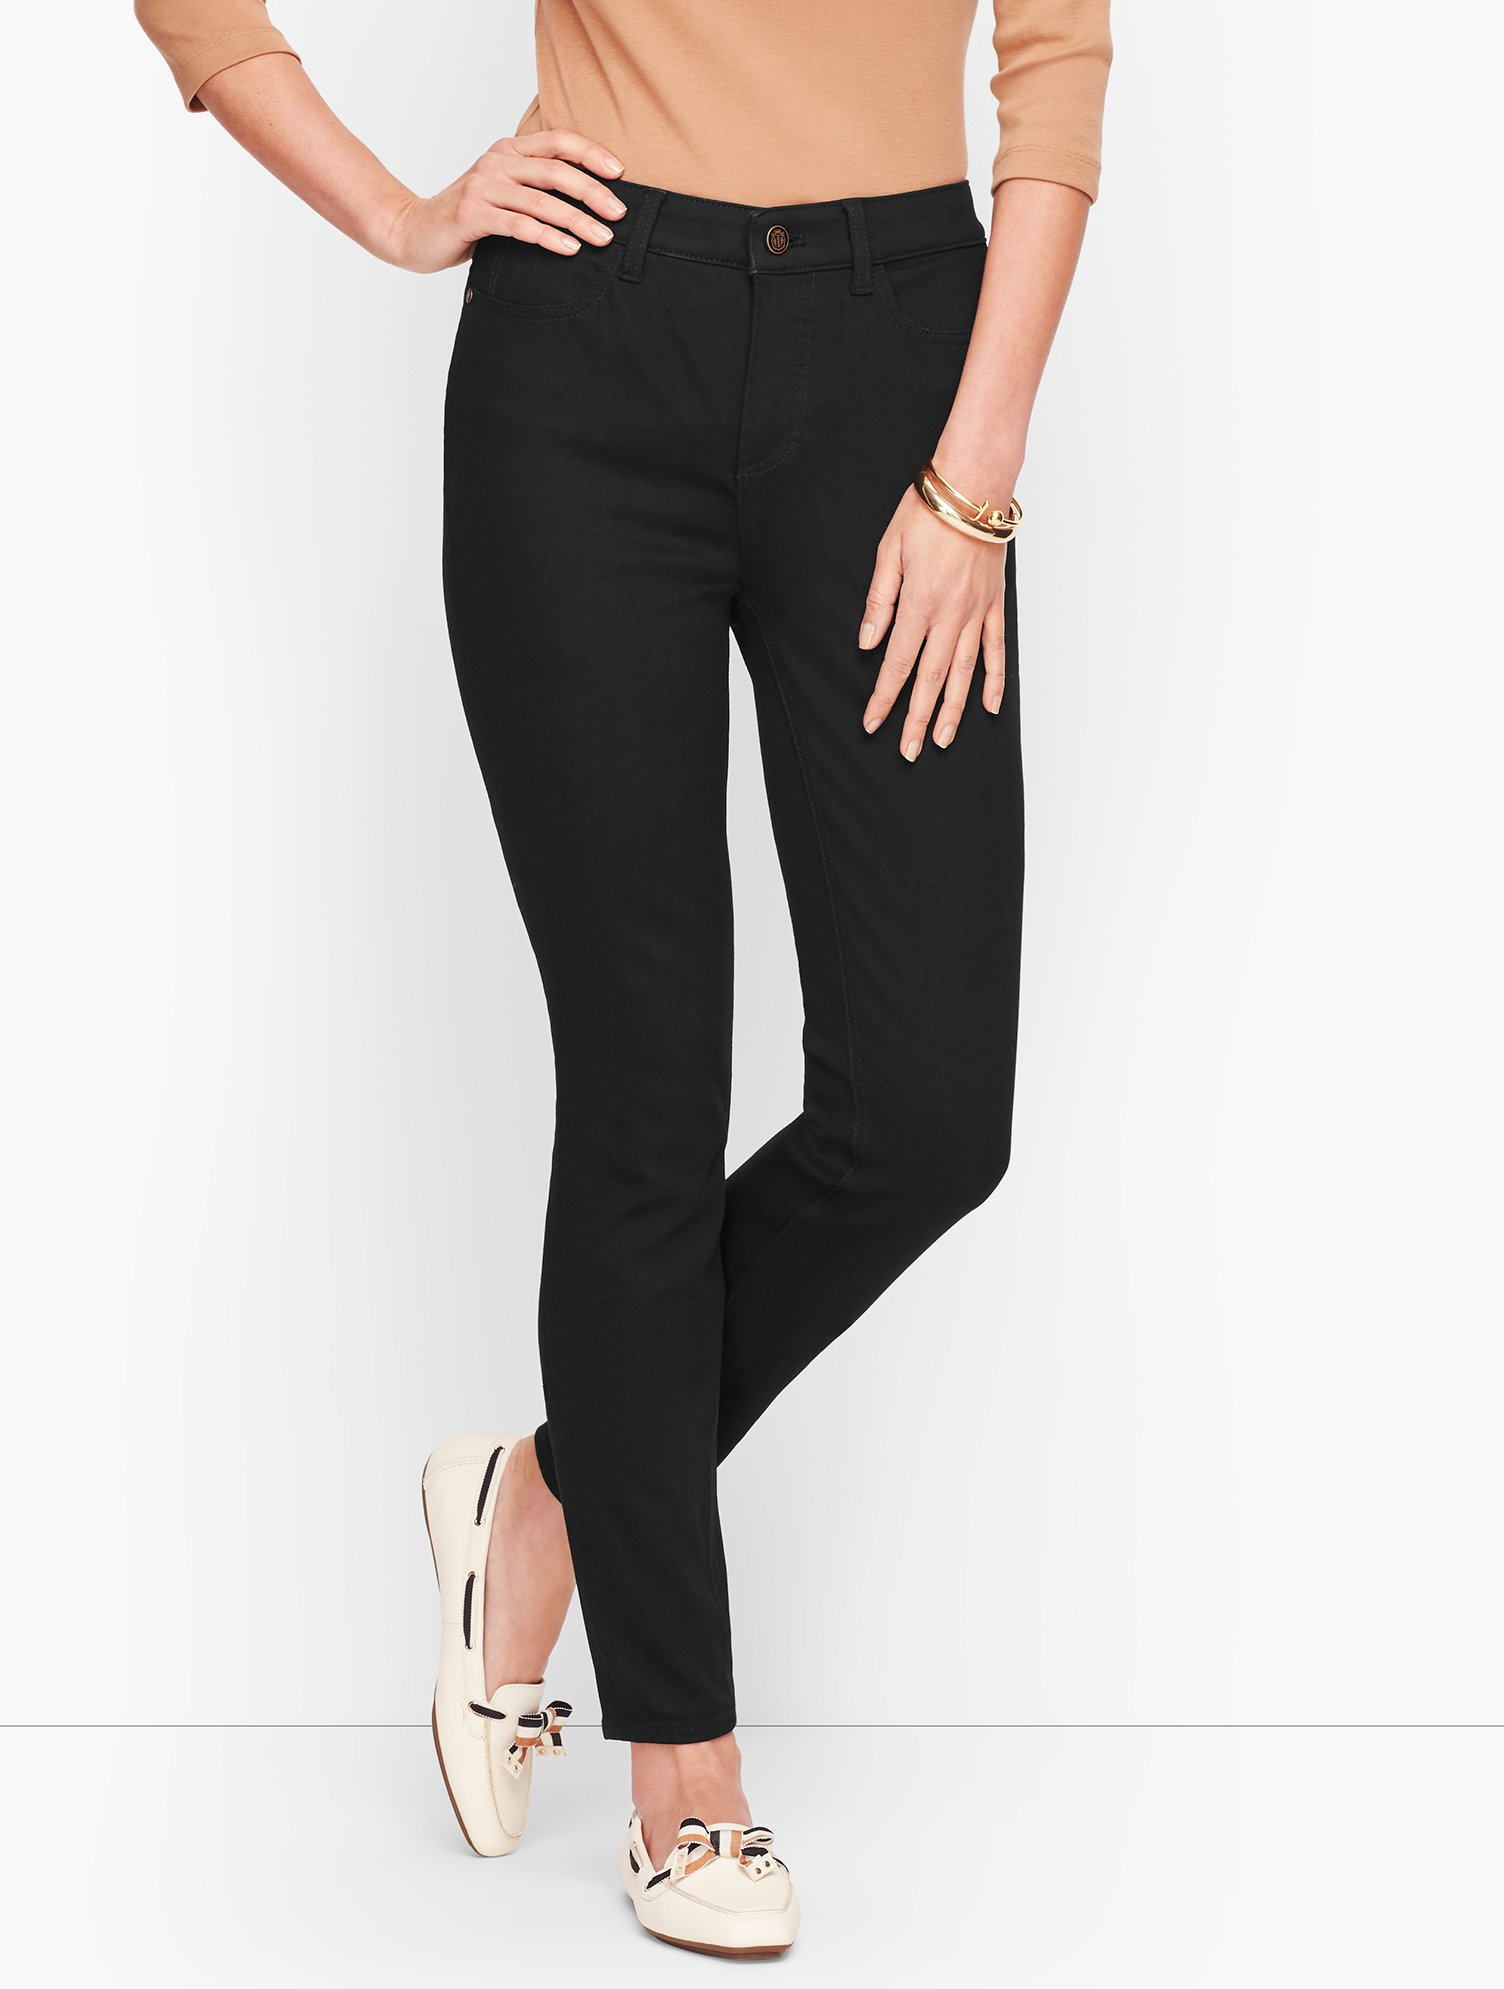 Our must-have jeggings in black, designed from the Comfort Stretch fabric that sculpts, slims and lifts, all while maintaining its great shape and snug comfort. Or, if you have an hourglass figure, check out our Denim Jegging - Curvy Fit/Black. features Skinny leg High waist Ankle length Fly front with button closure Flawless Five-Pocket Imported Fit: Inseam: Misses 29 inches; Misses Long 31 inches; Petite 26 1/2 inches; Plus 29 inches; Plus Petite 26 1/2 inches Material: 70% Cotton, 19% Polyest